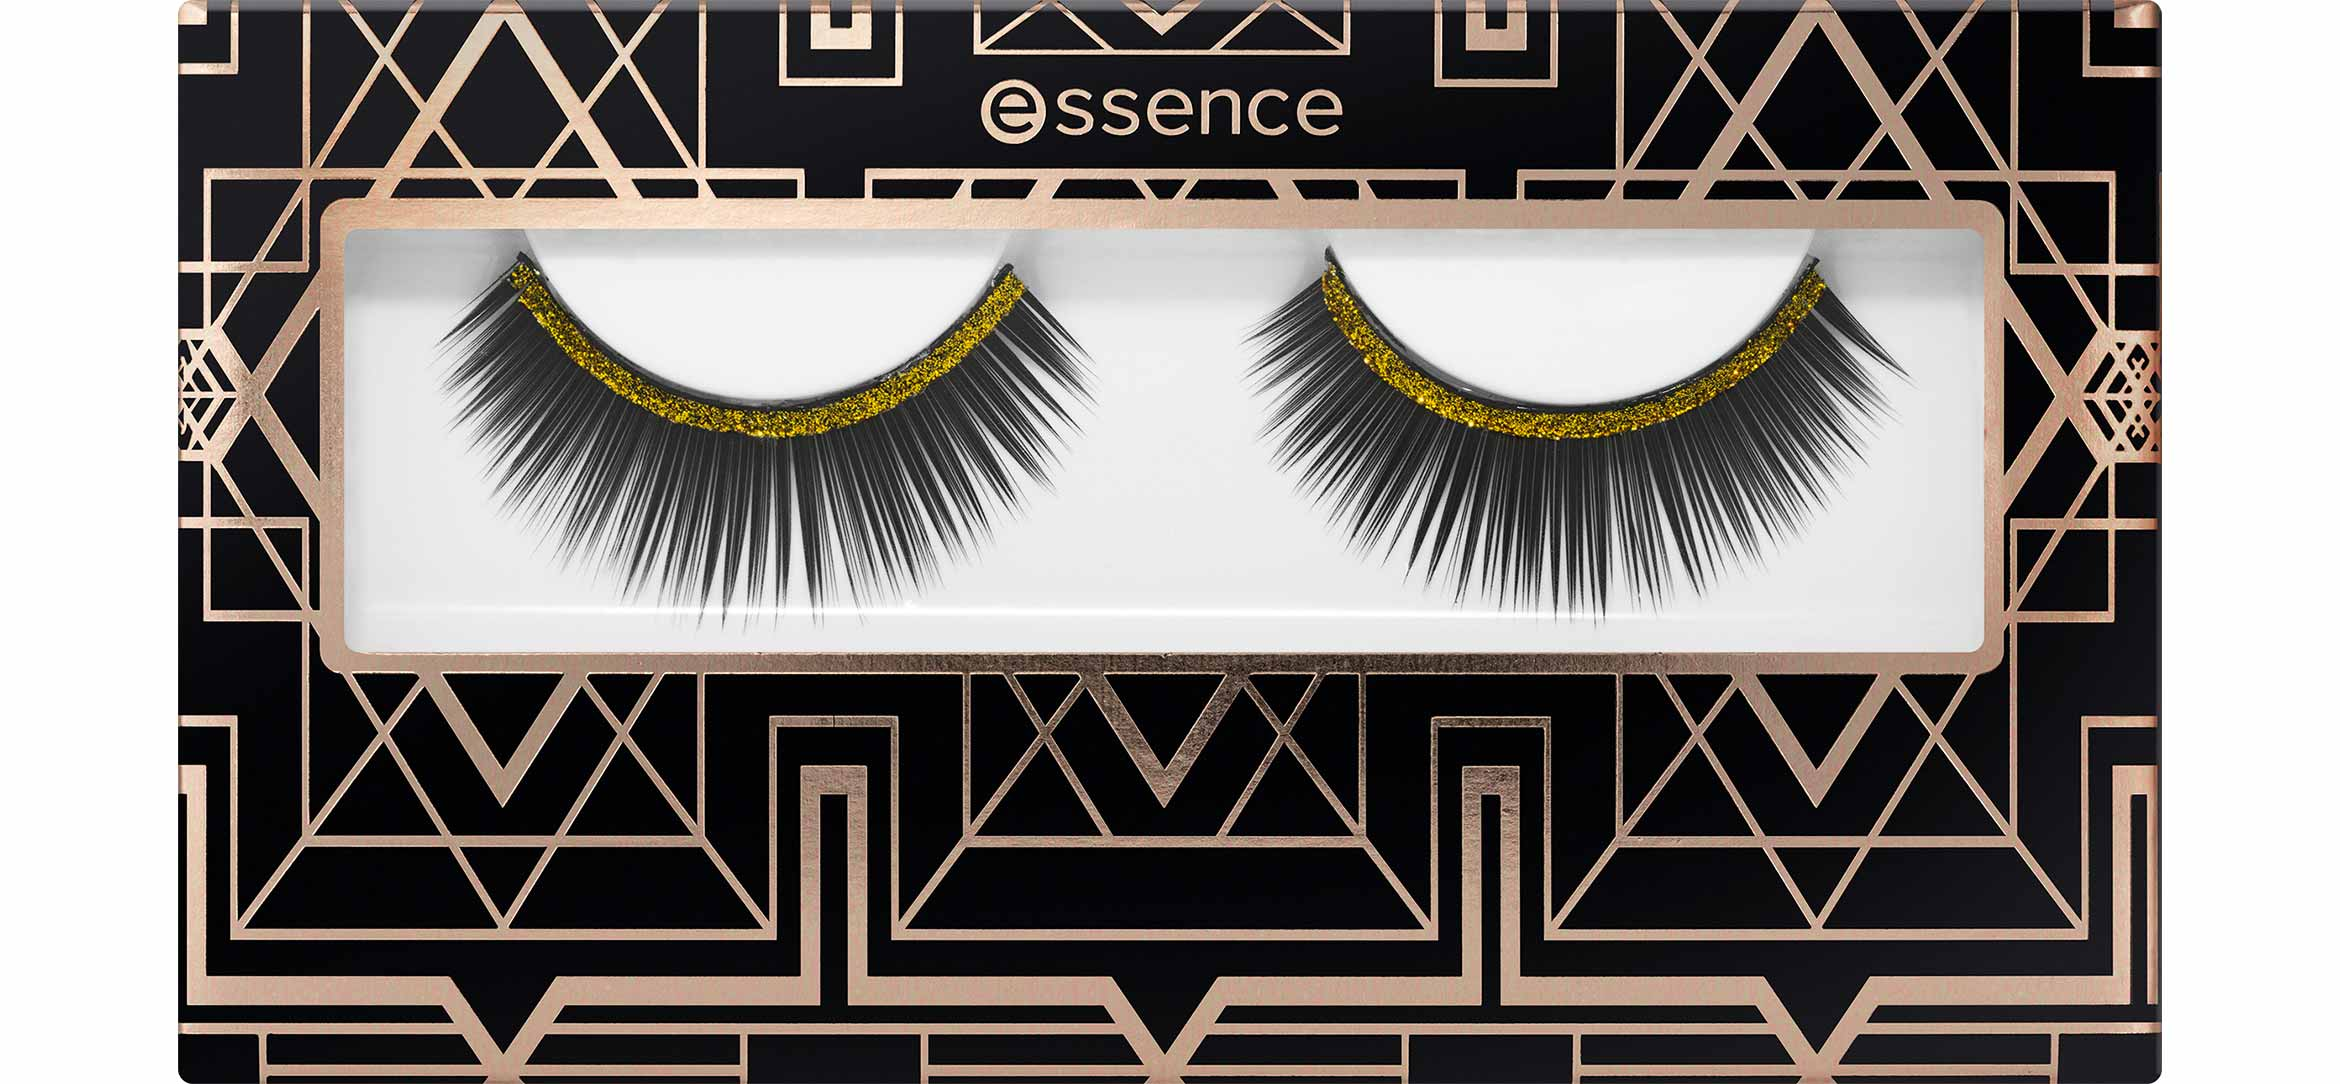 essence-false-lashes-covered-in-gold